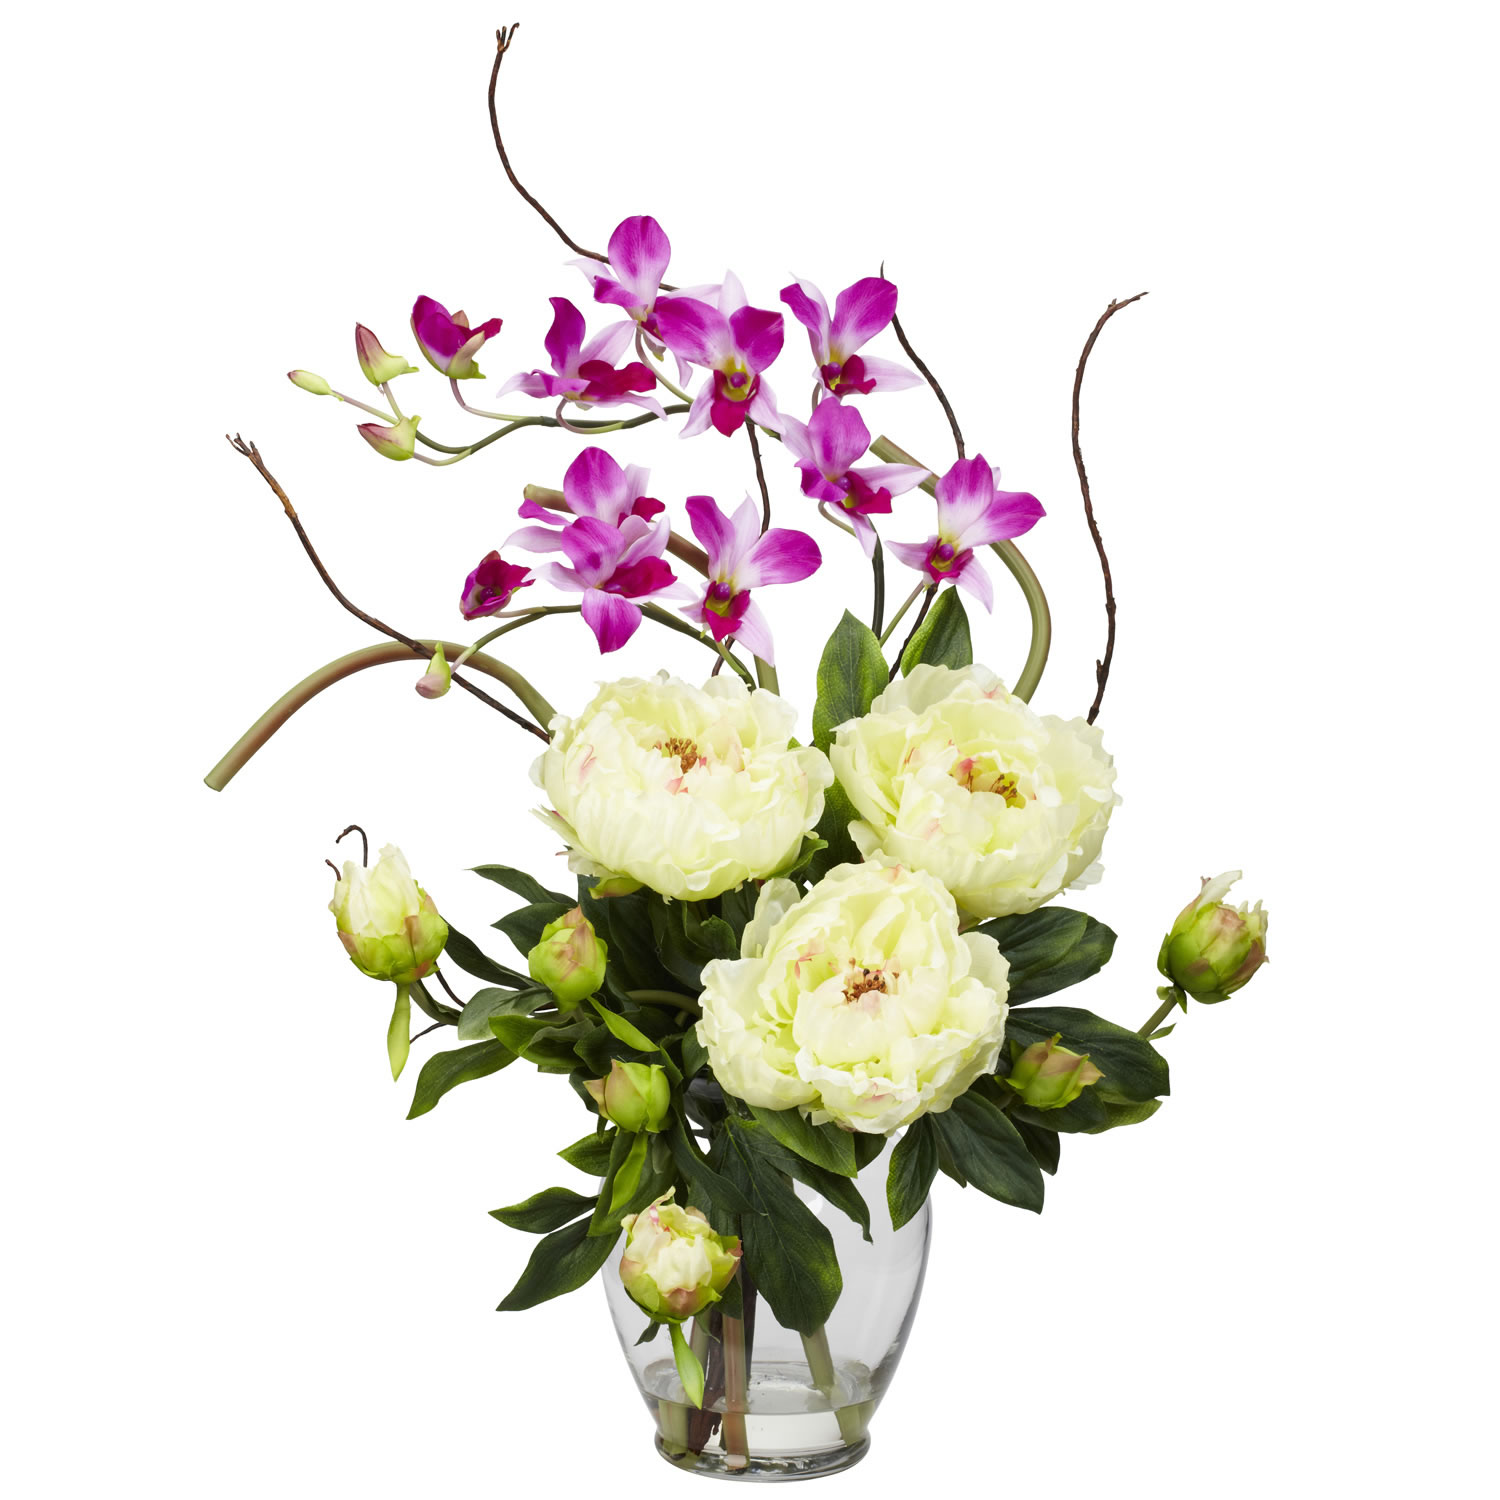 Artificial flower arrangement nearly natural silk flowers for A arrangement florist flowers